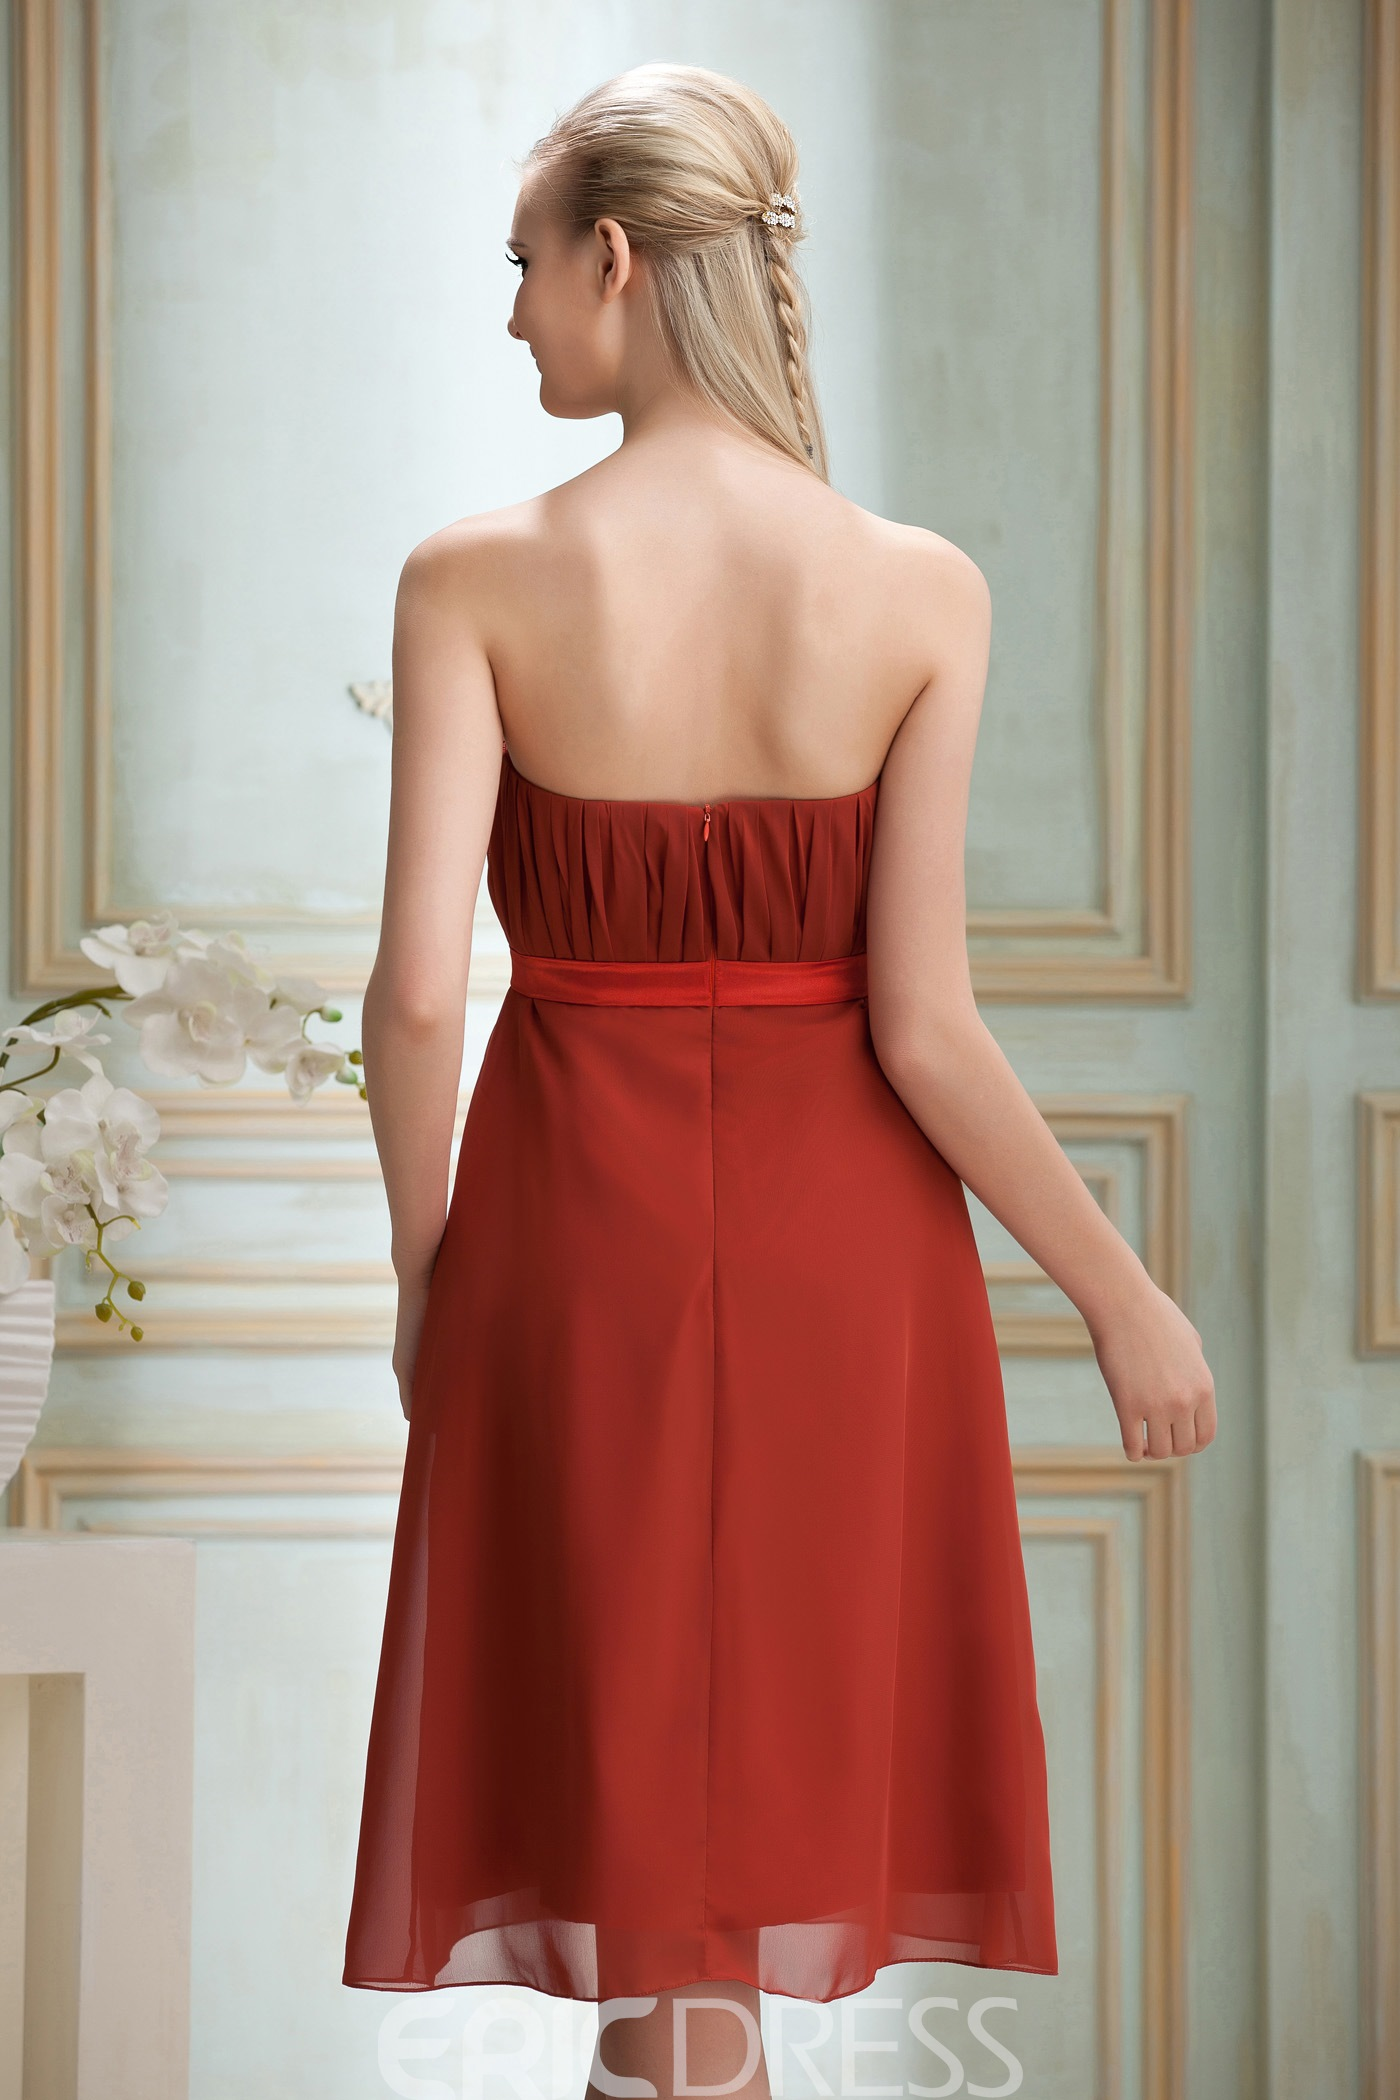 Chic Strapless Ruched A-line Strapless Knee-Length Hot Sell Yana's Bridesmaid Dress